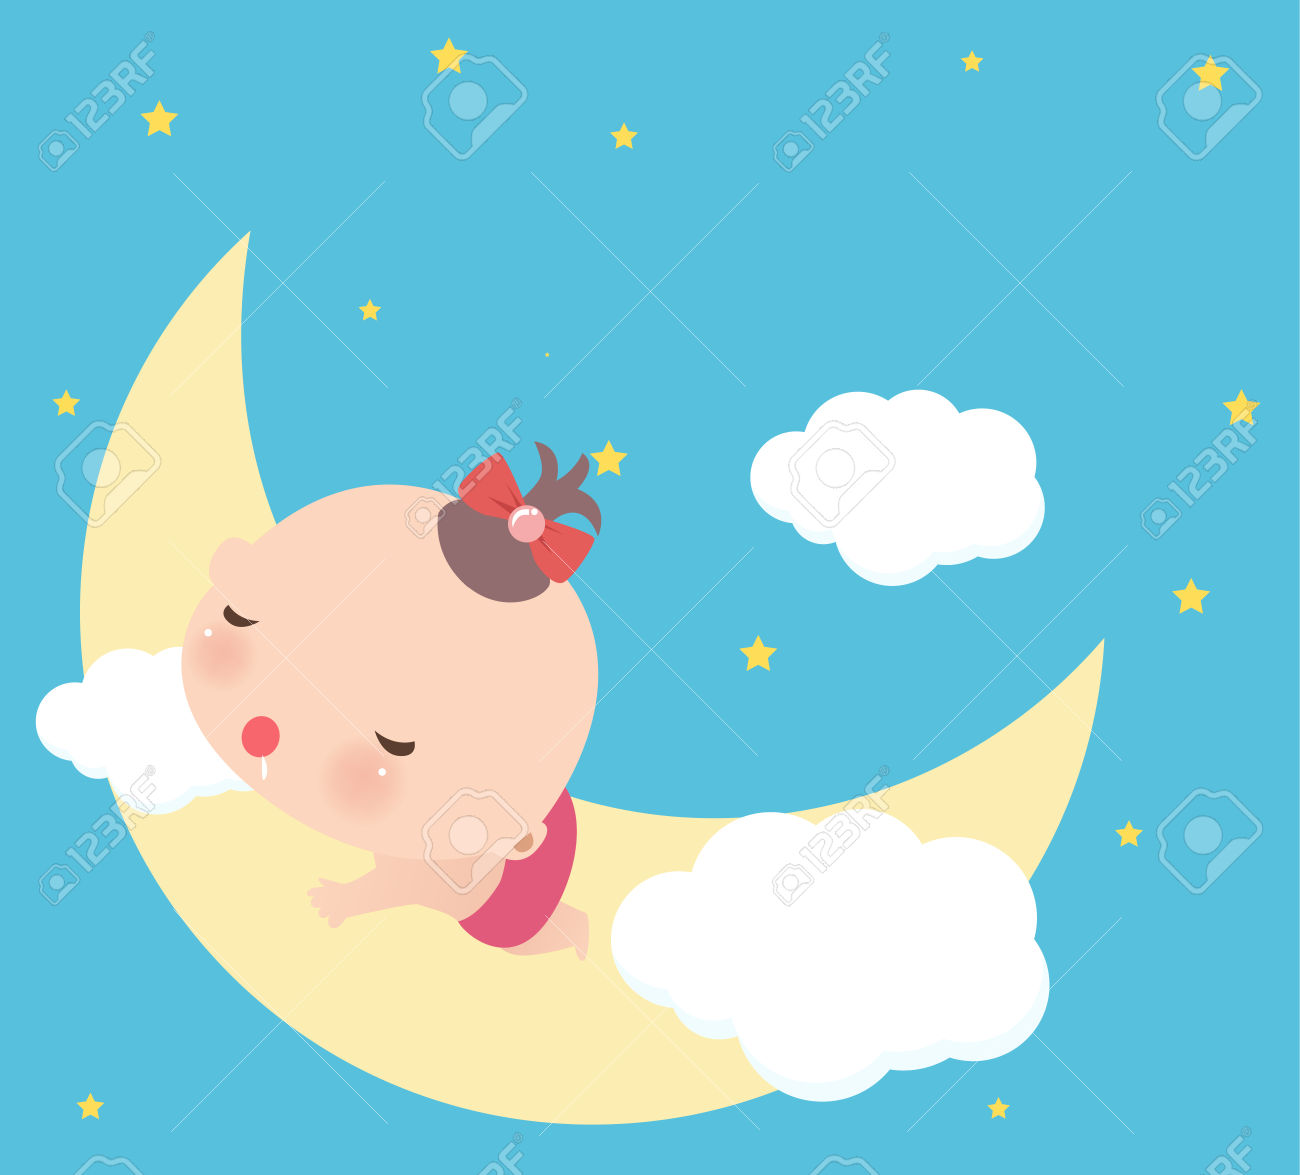 Baby girl clipart sleeping png freeuse Illustraon Of A Cute Little Baby Girl Sleeping Royalty Free ... png freeuse